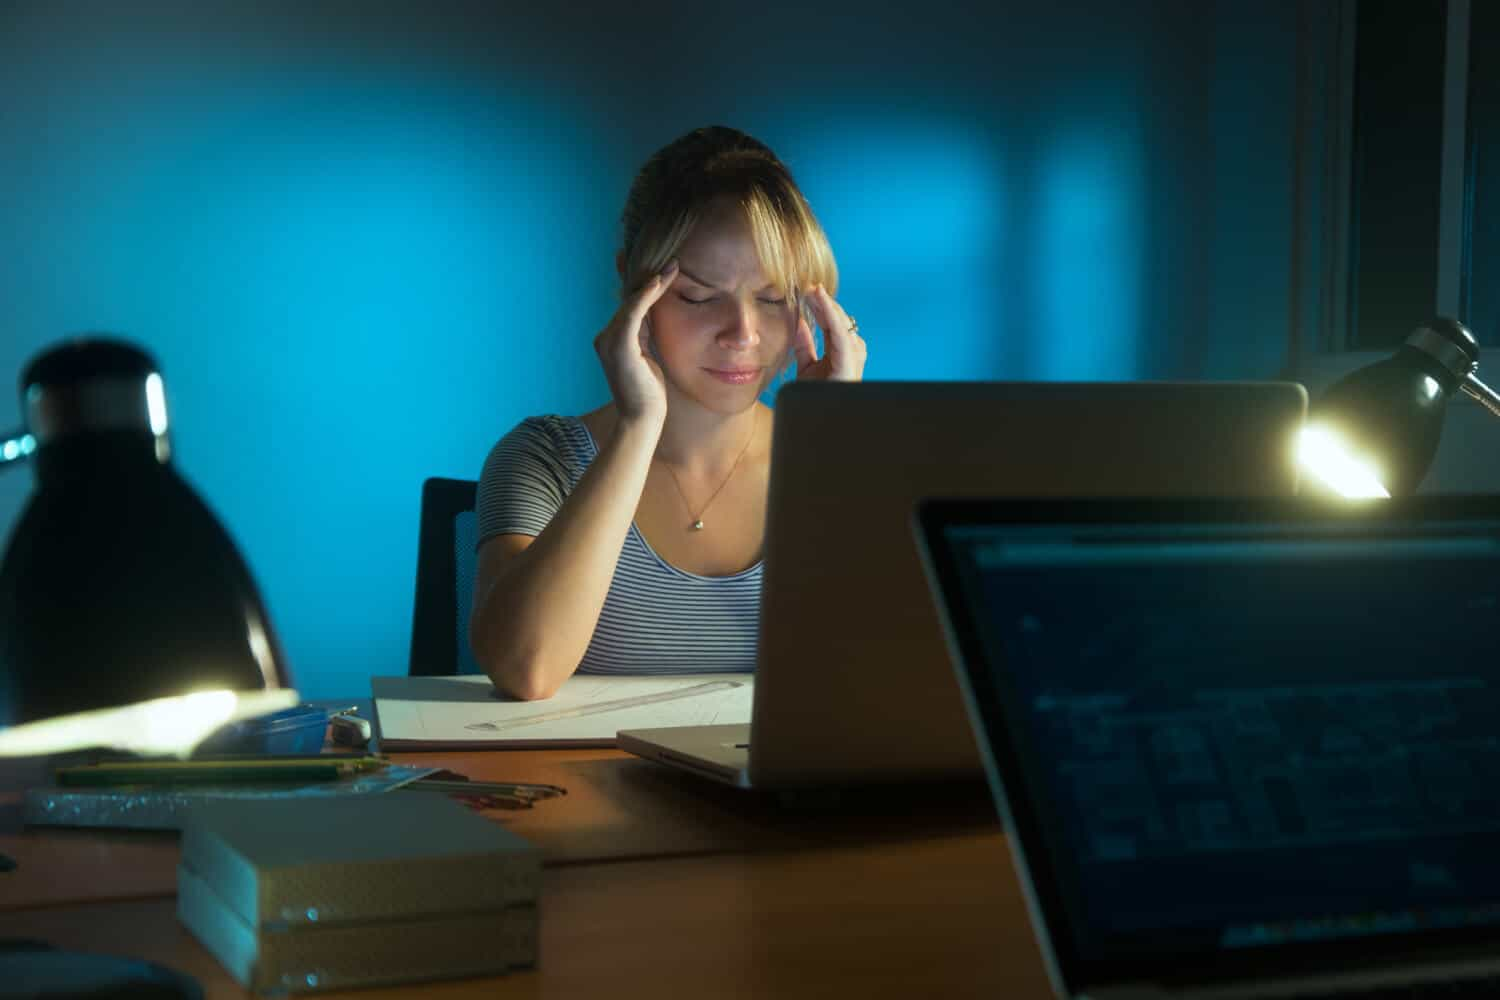 Woman fighting a headache, sitting in front of a laptop in a home office late at night, plagued by financial stress